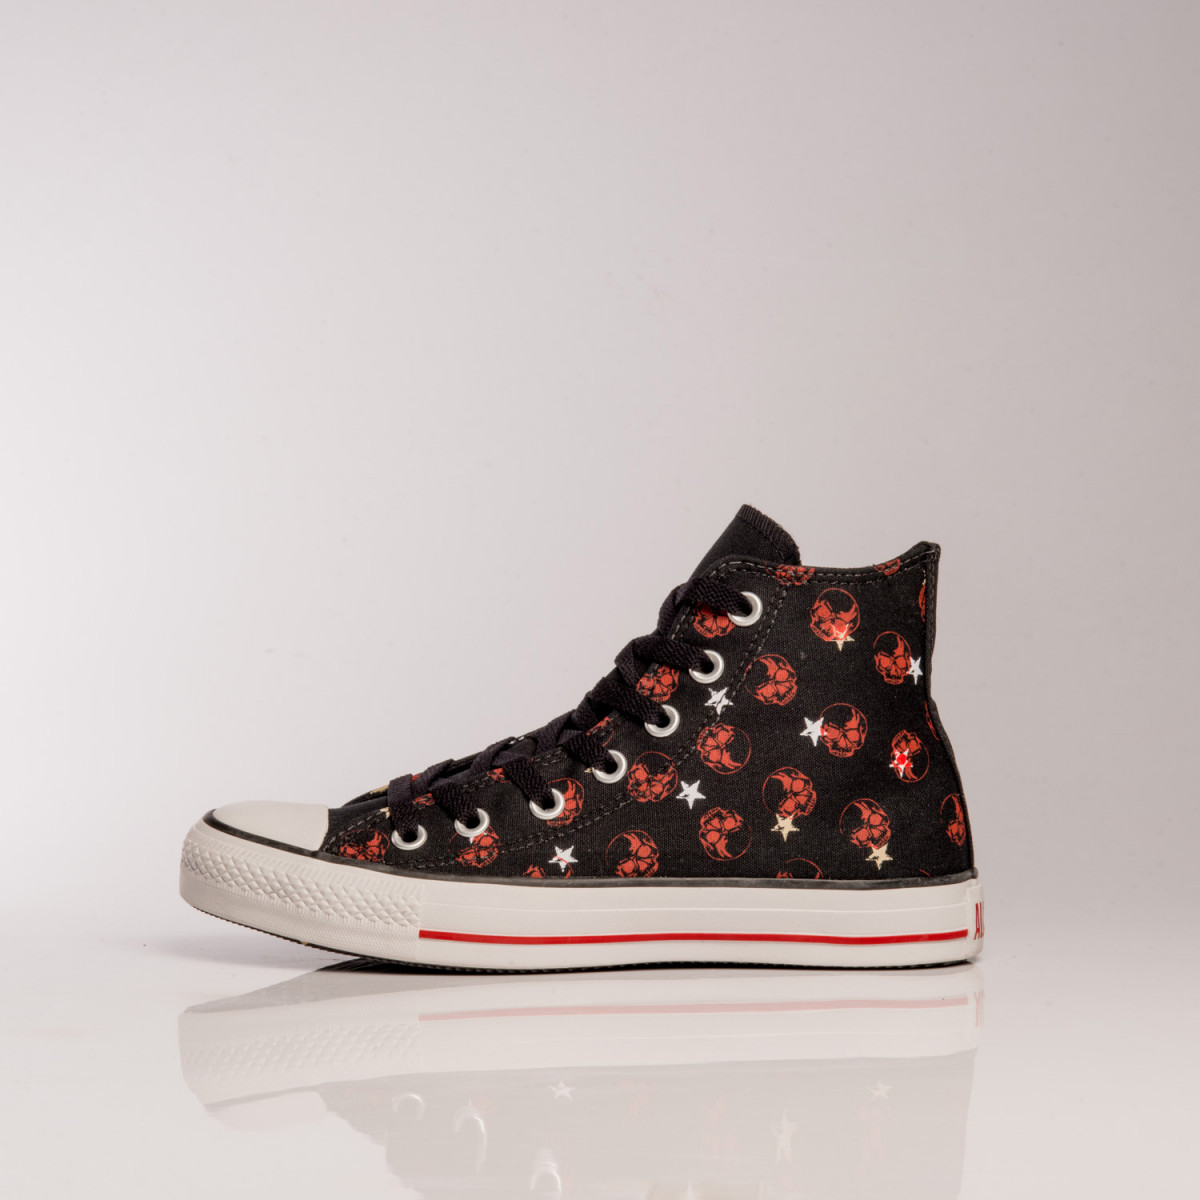 ZAPATILLAS CONVERSE CT ALL STAR HI